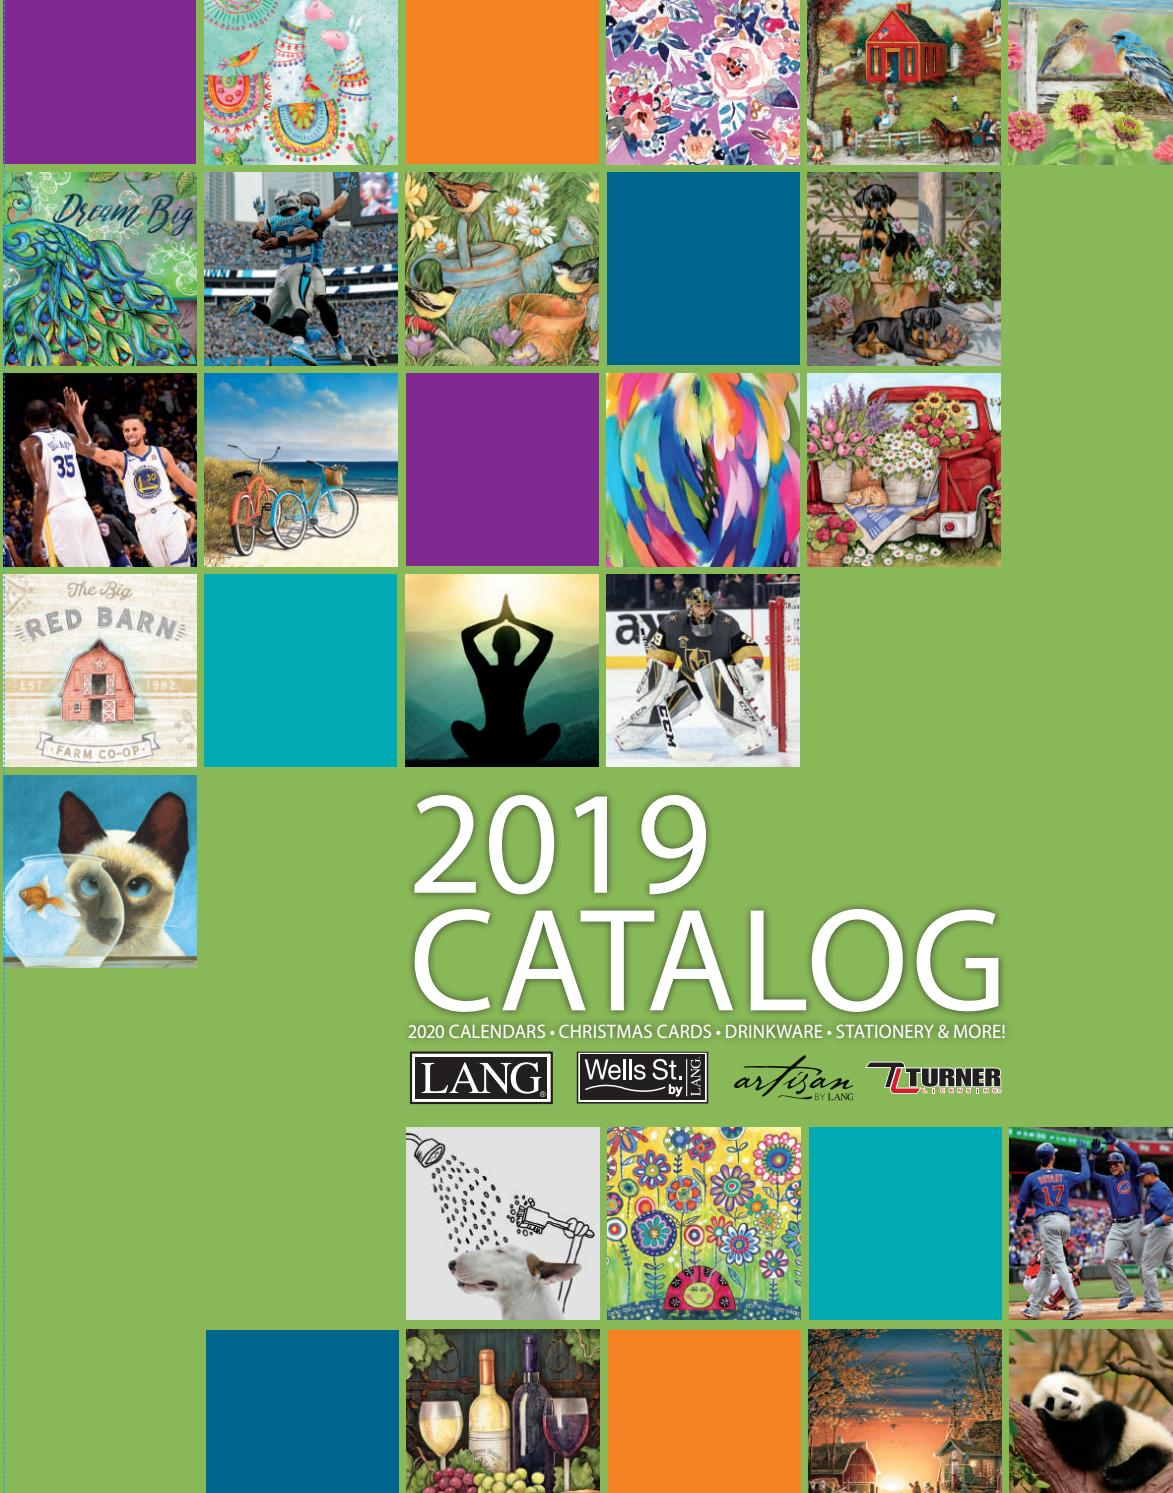 2019 LANG Catalog by The LANG Companies - issuu